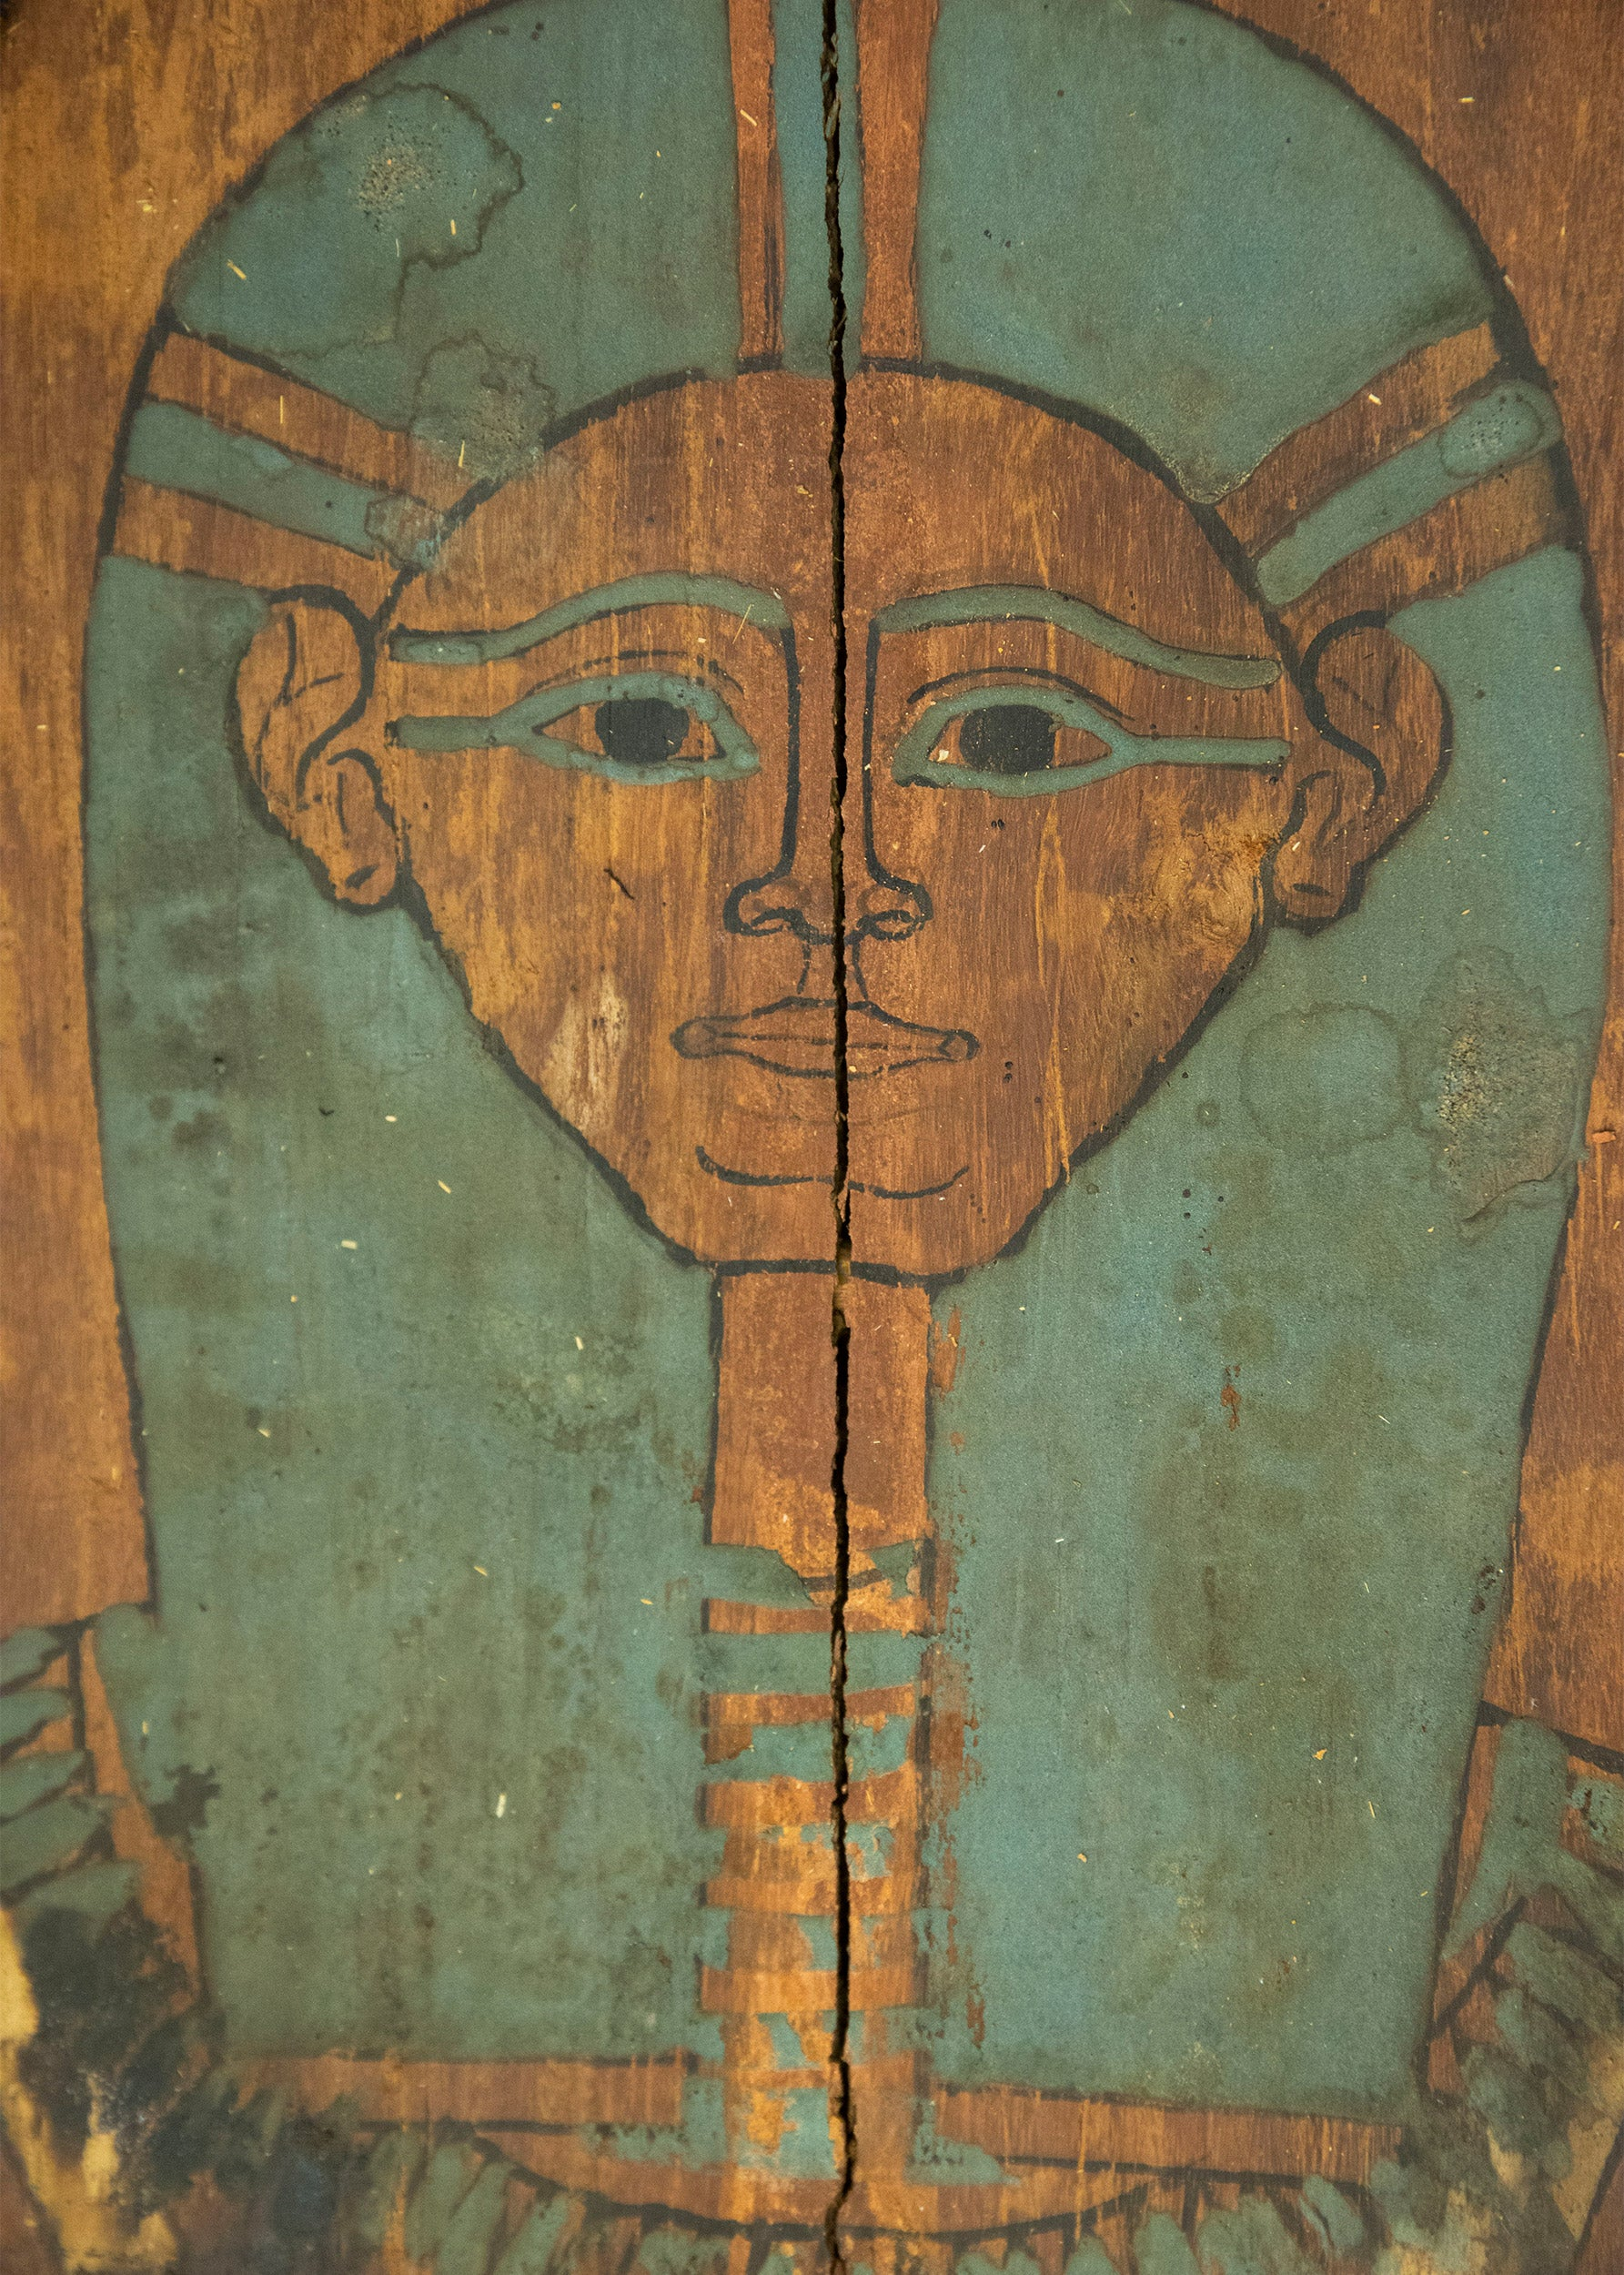 Image foundin the Coffin of Mut-iy-iy